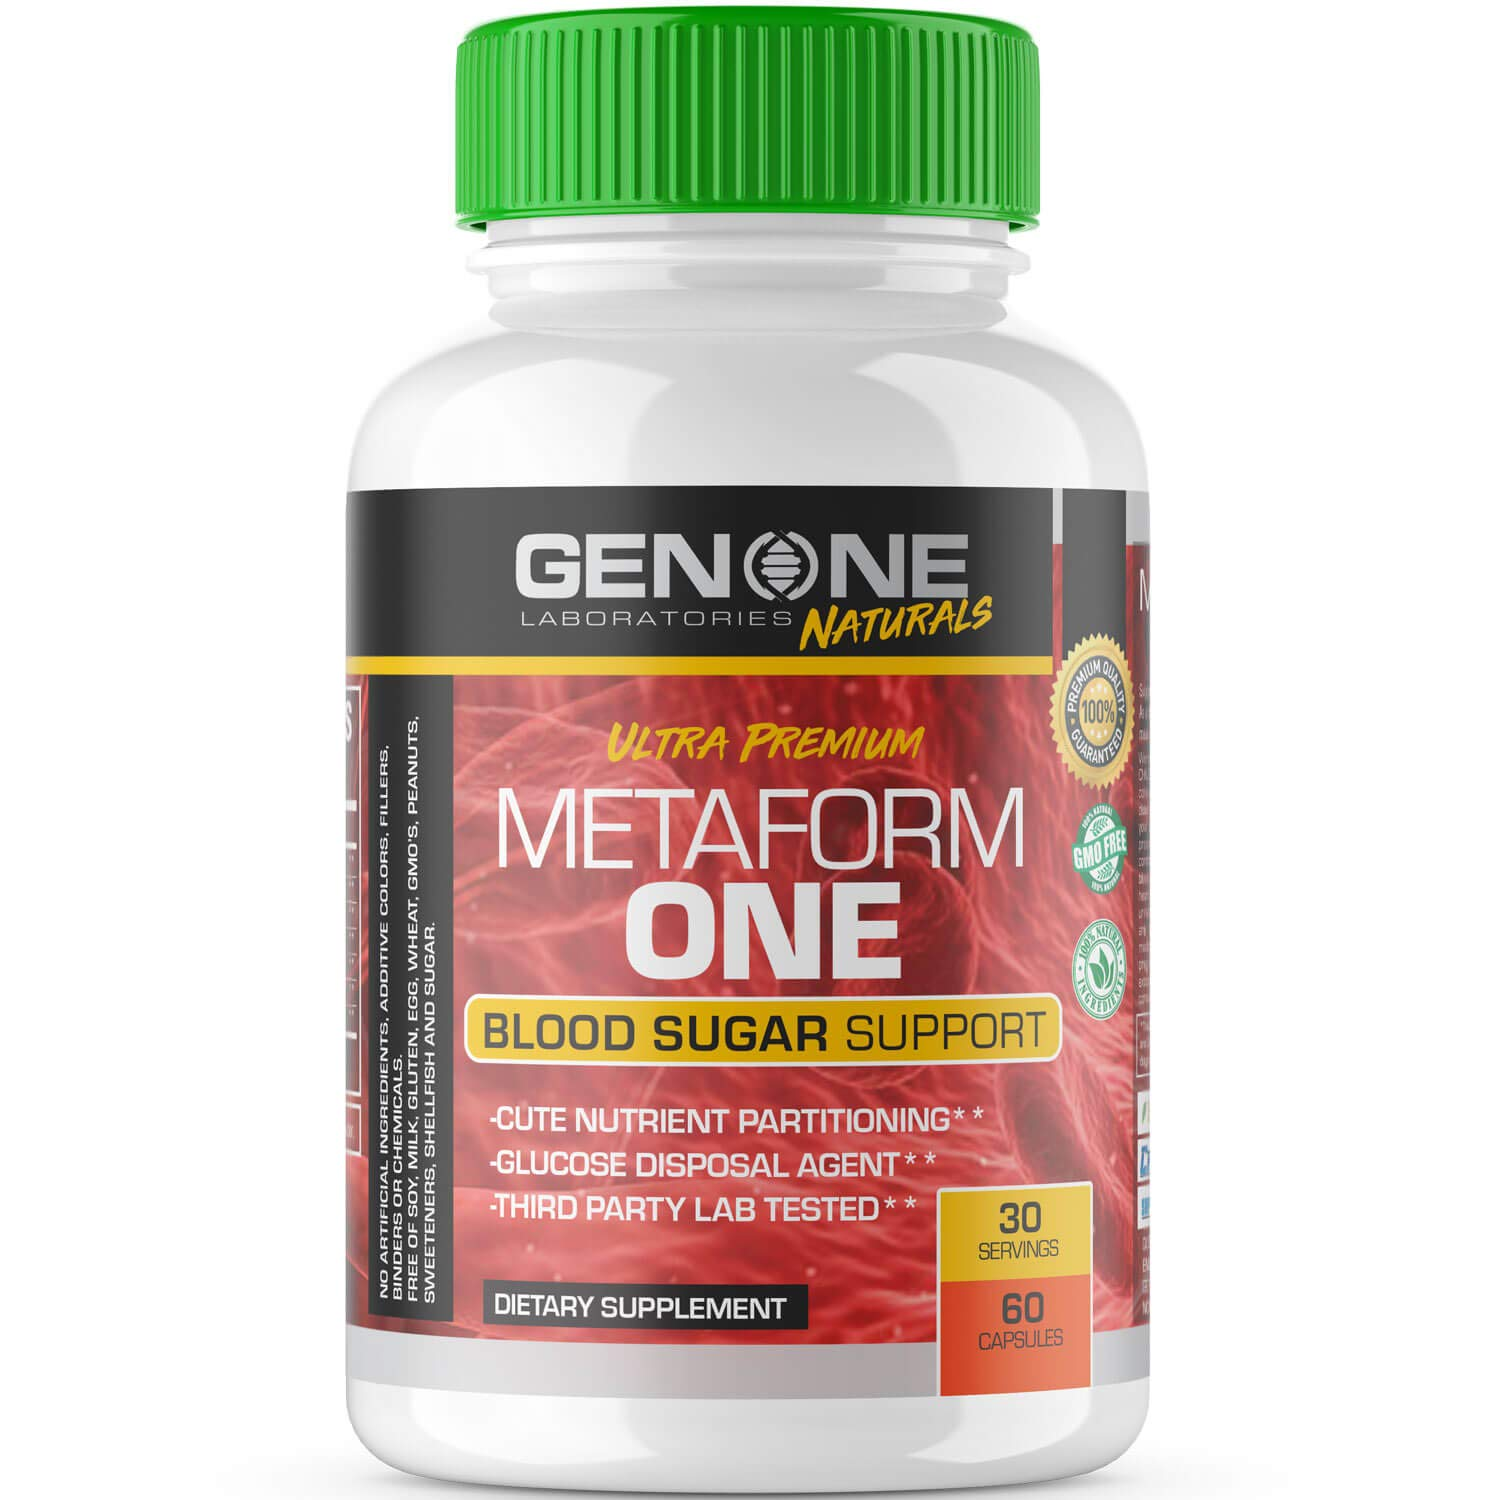 GenOne Nutrition- Metaform One - Glucose Disposal Agent (GDA), Blood Sugar Control & Acute Nutrient Partitioning - 60 Capsules